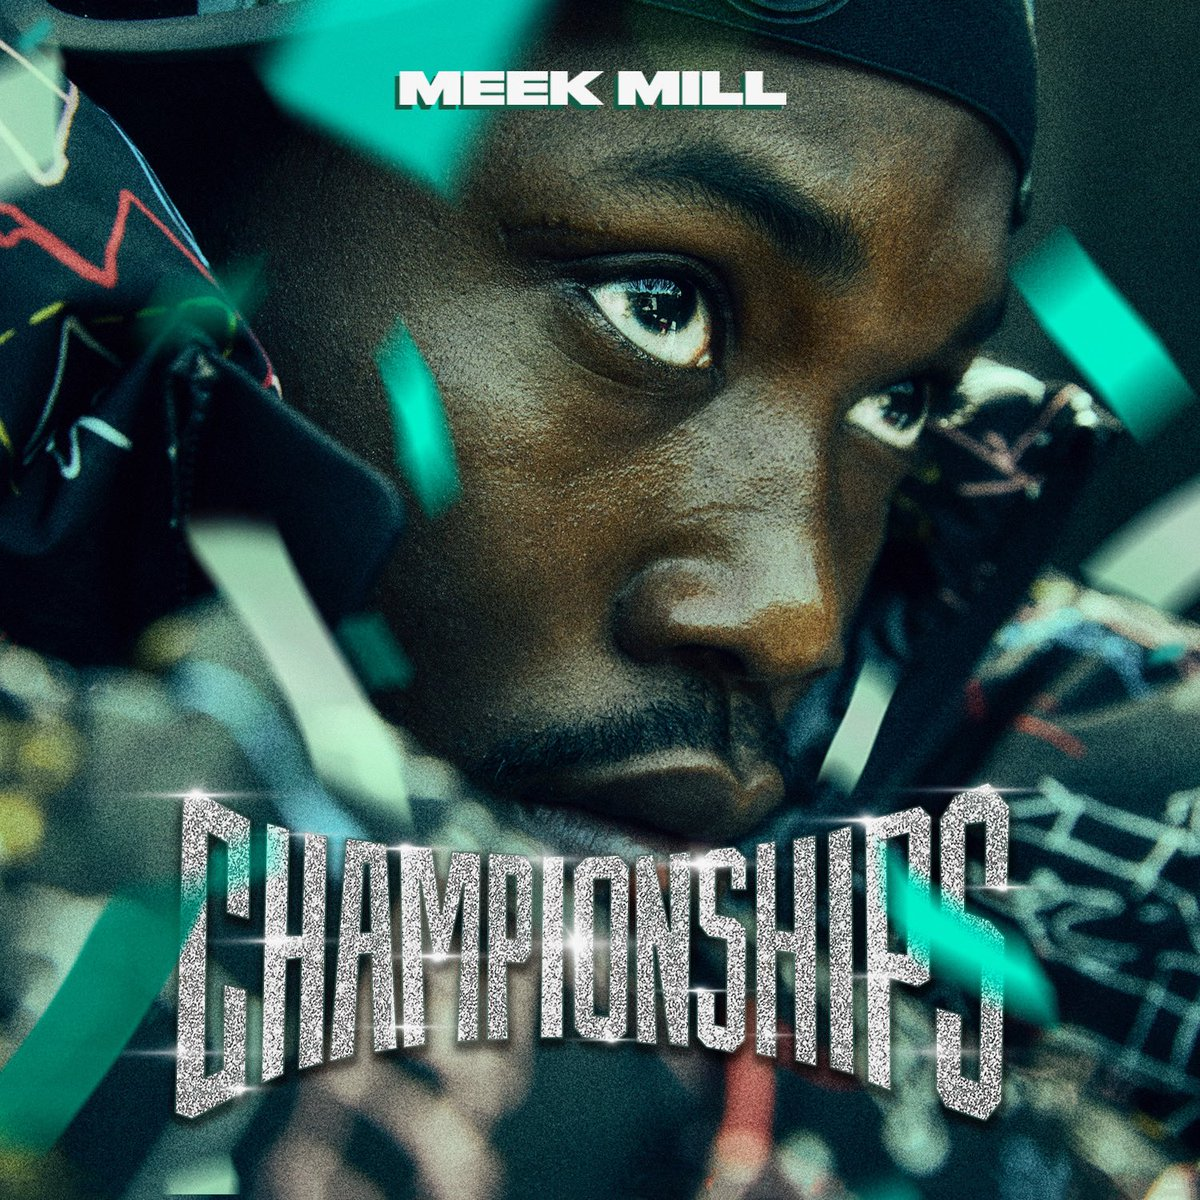 Meek Mill's Championships artwork